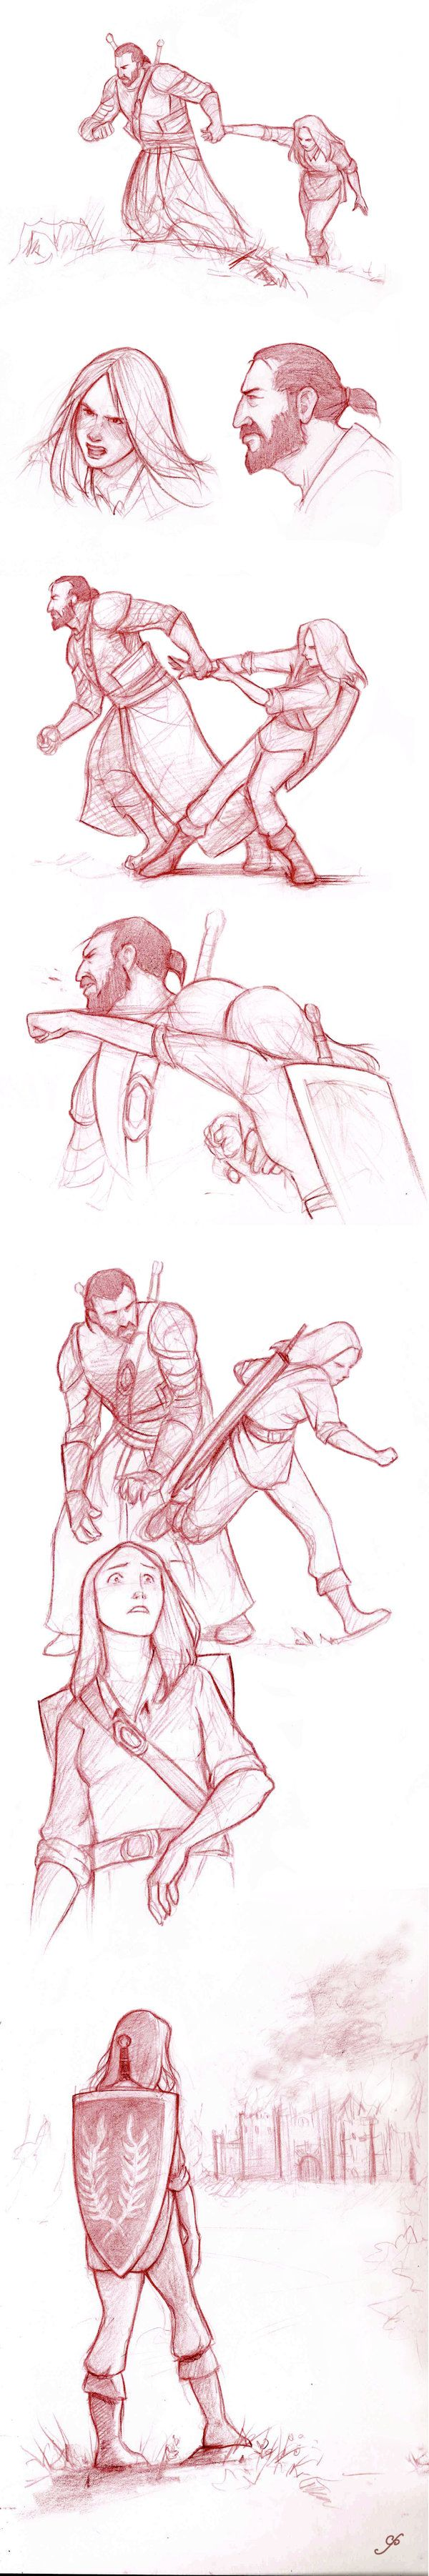 Attack on Castle Cousland part 14 by RanmaCMH on DeviantArt